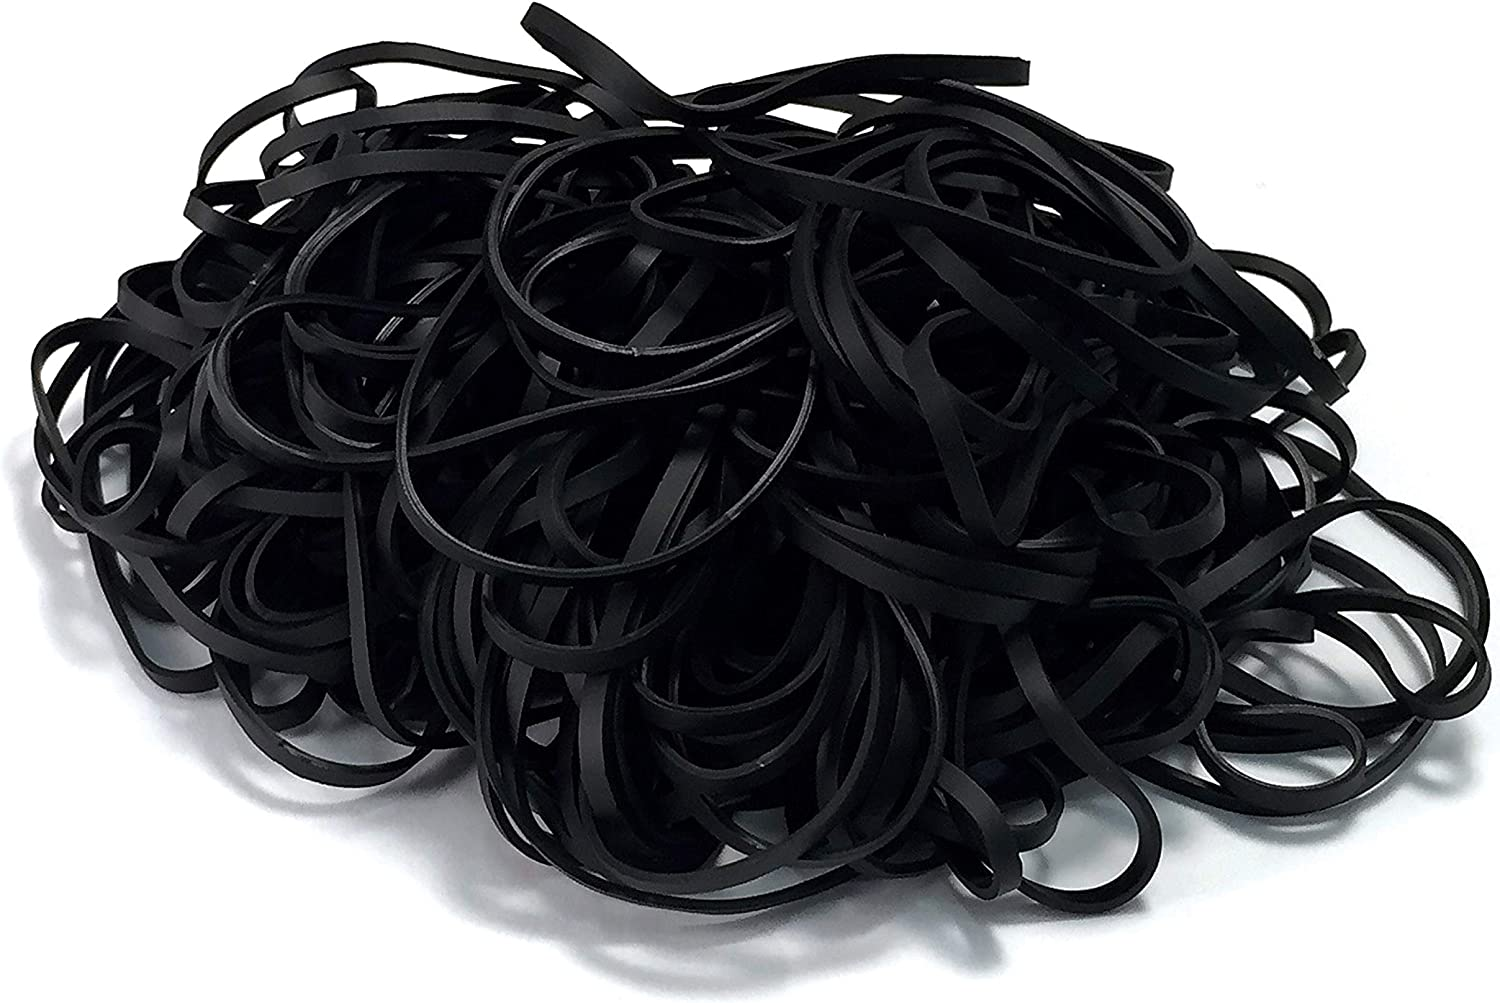 200 Black Rubber Bands, by Better Office Products, Size 33, 200/Bag, Vibrant Black Rubber Bands